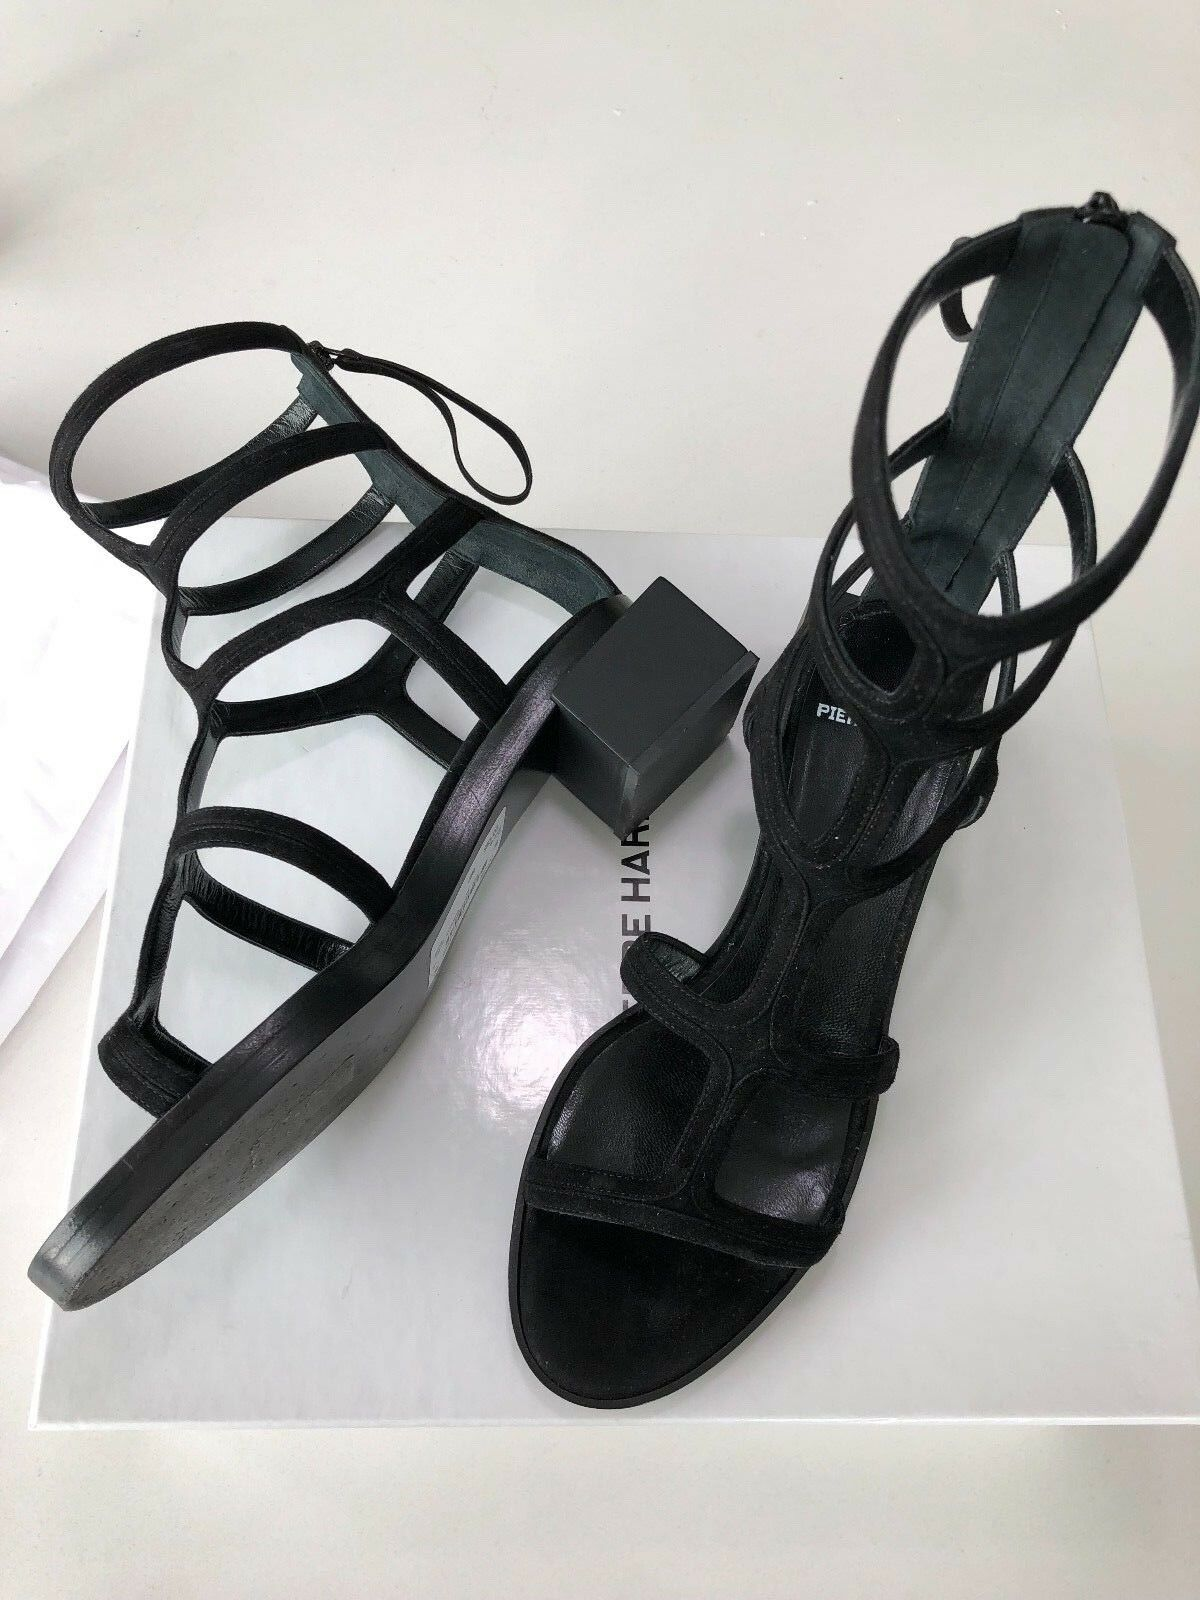 Pre-owned  PIERRE HARDY Black Suede Block Heel Cut Out Sandals Gladiator Sz 38